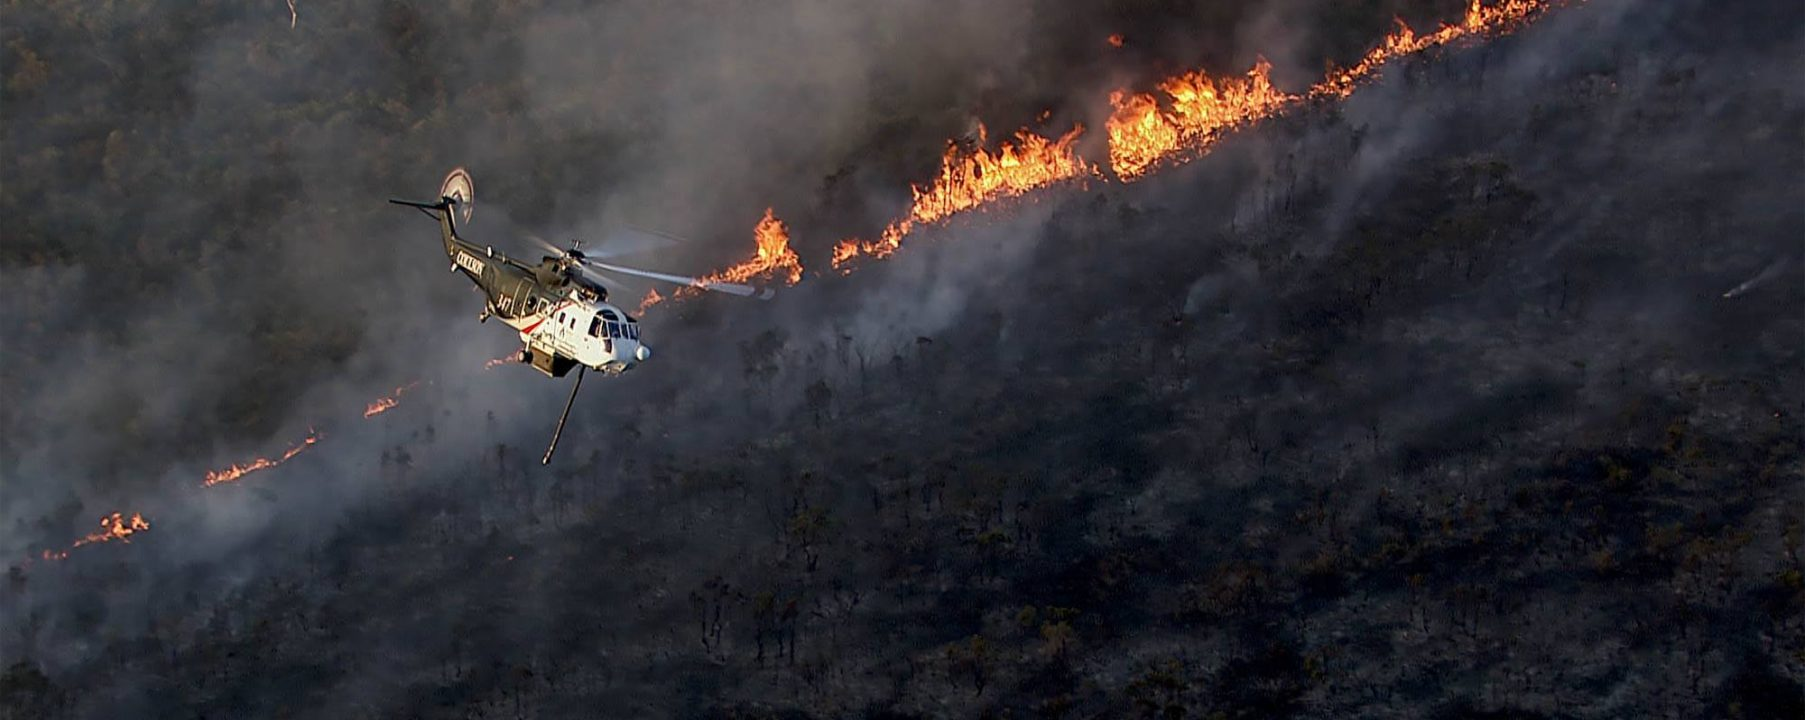 Helicopter Fire And Survey Aerial Photograph